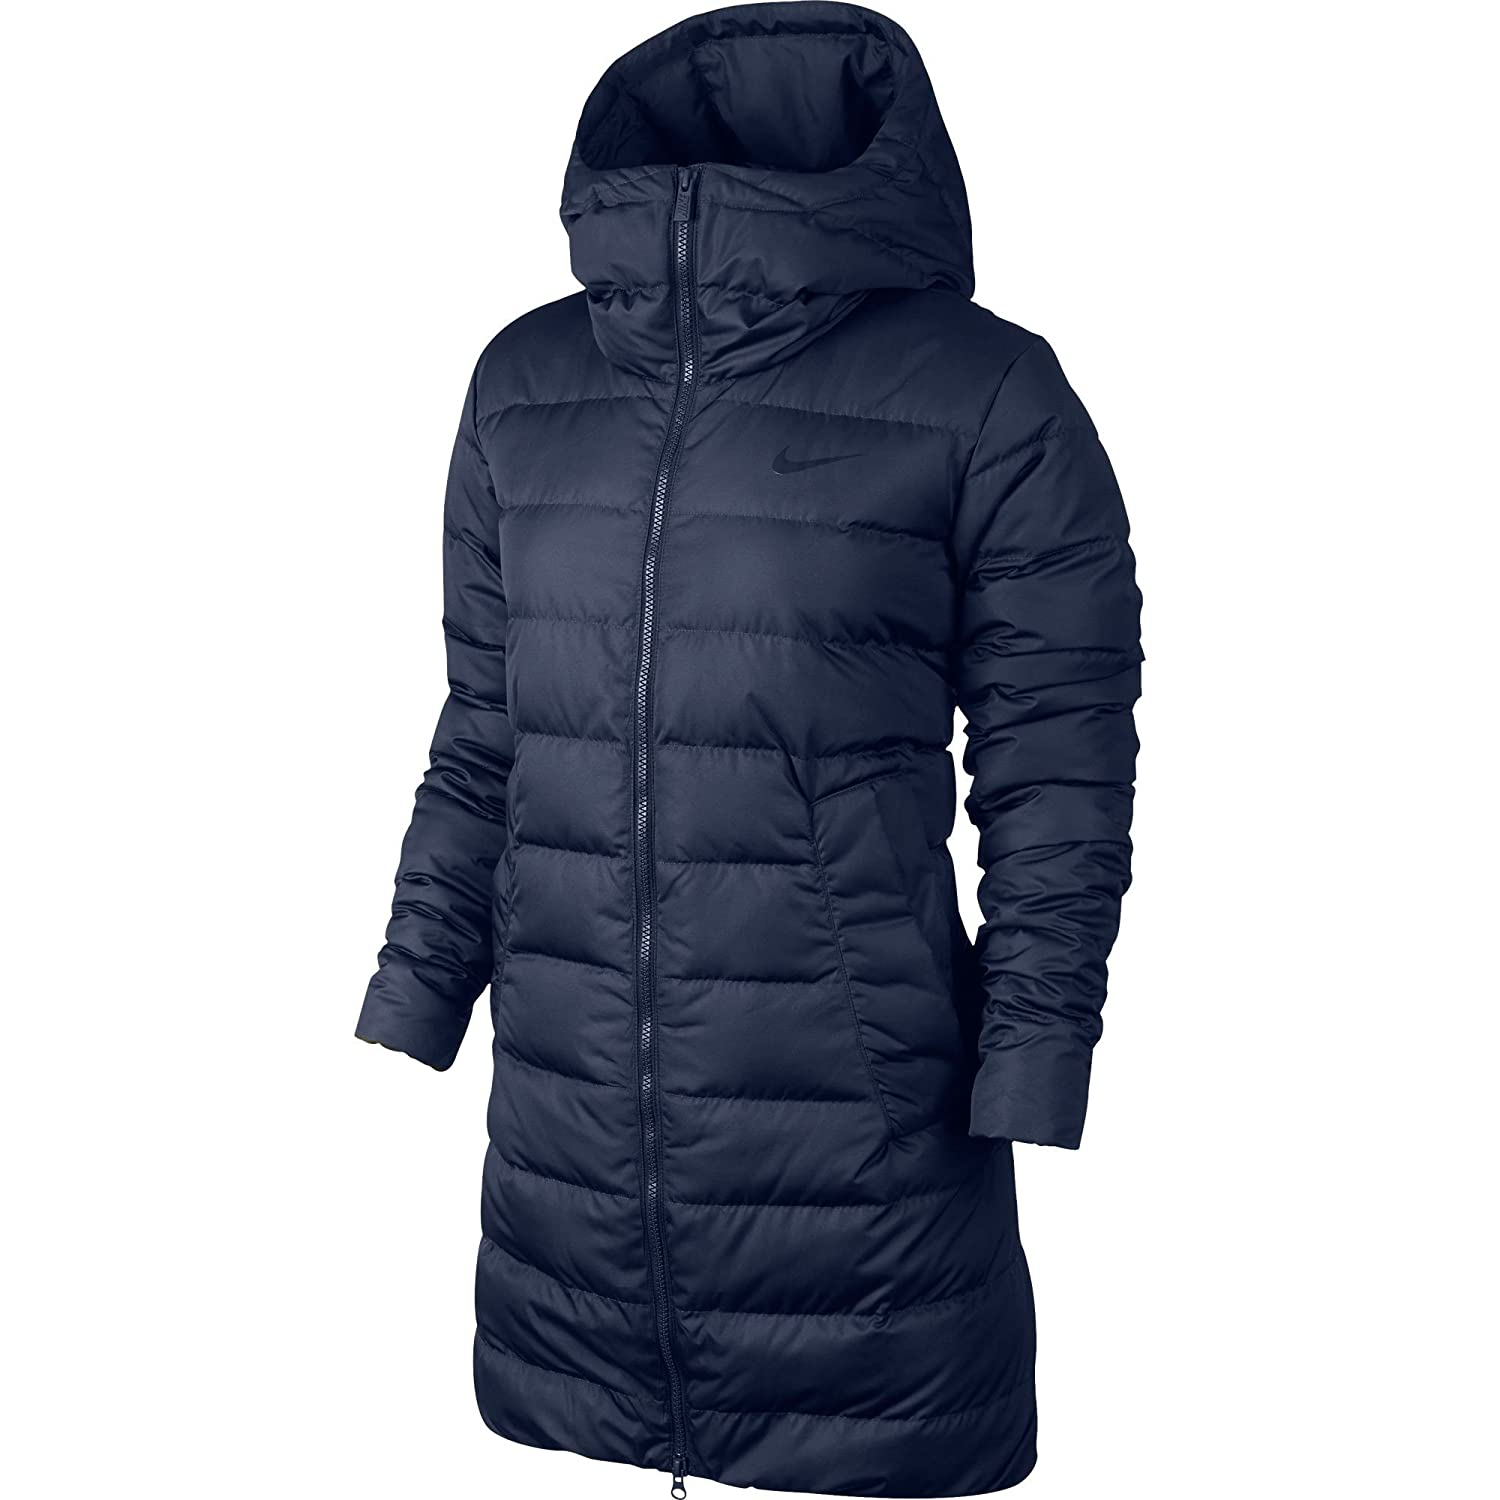 c0a24a0b0cfb Amazon.com  Nike Women s Victory 550 Down Parka Jacket Midnight Navy ...